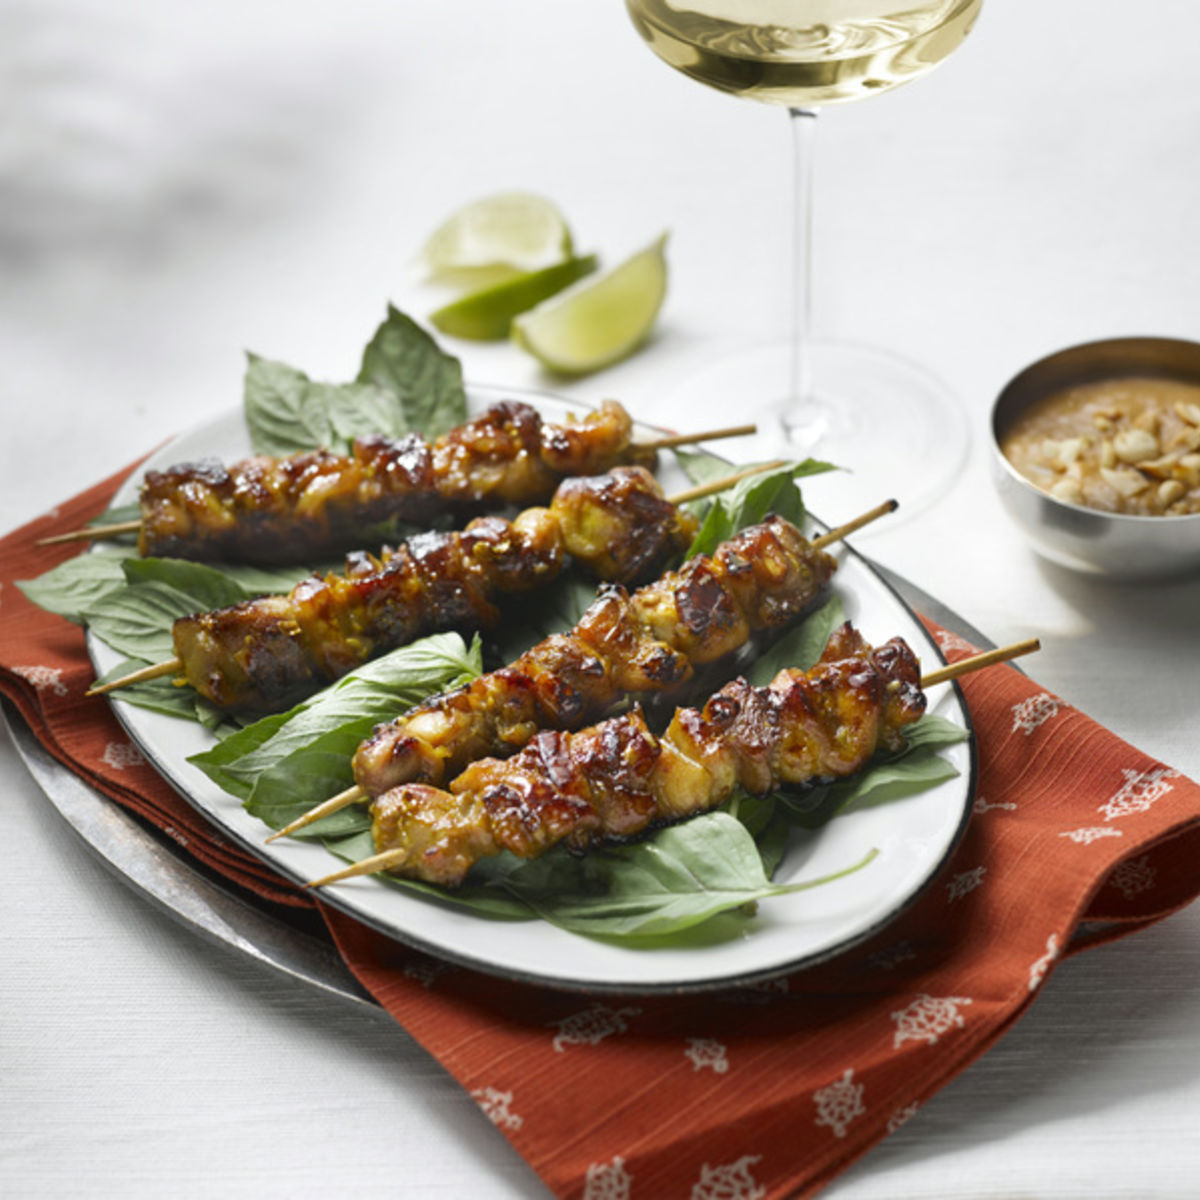 The picture shows chicken skewers with peanut sauce and a glass of white wine.